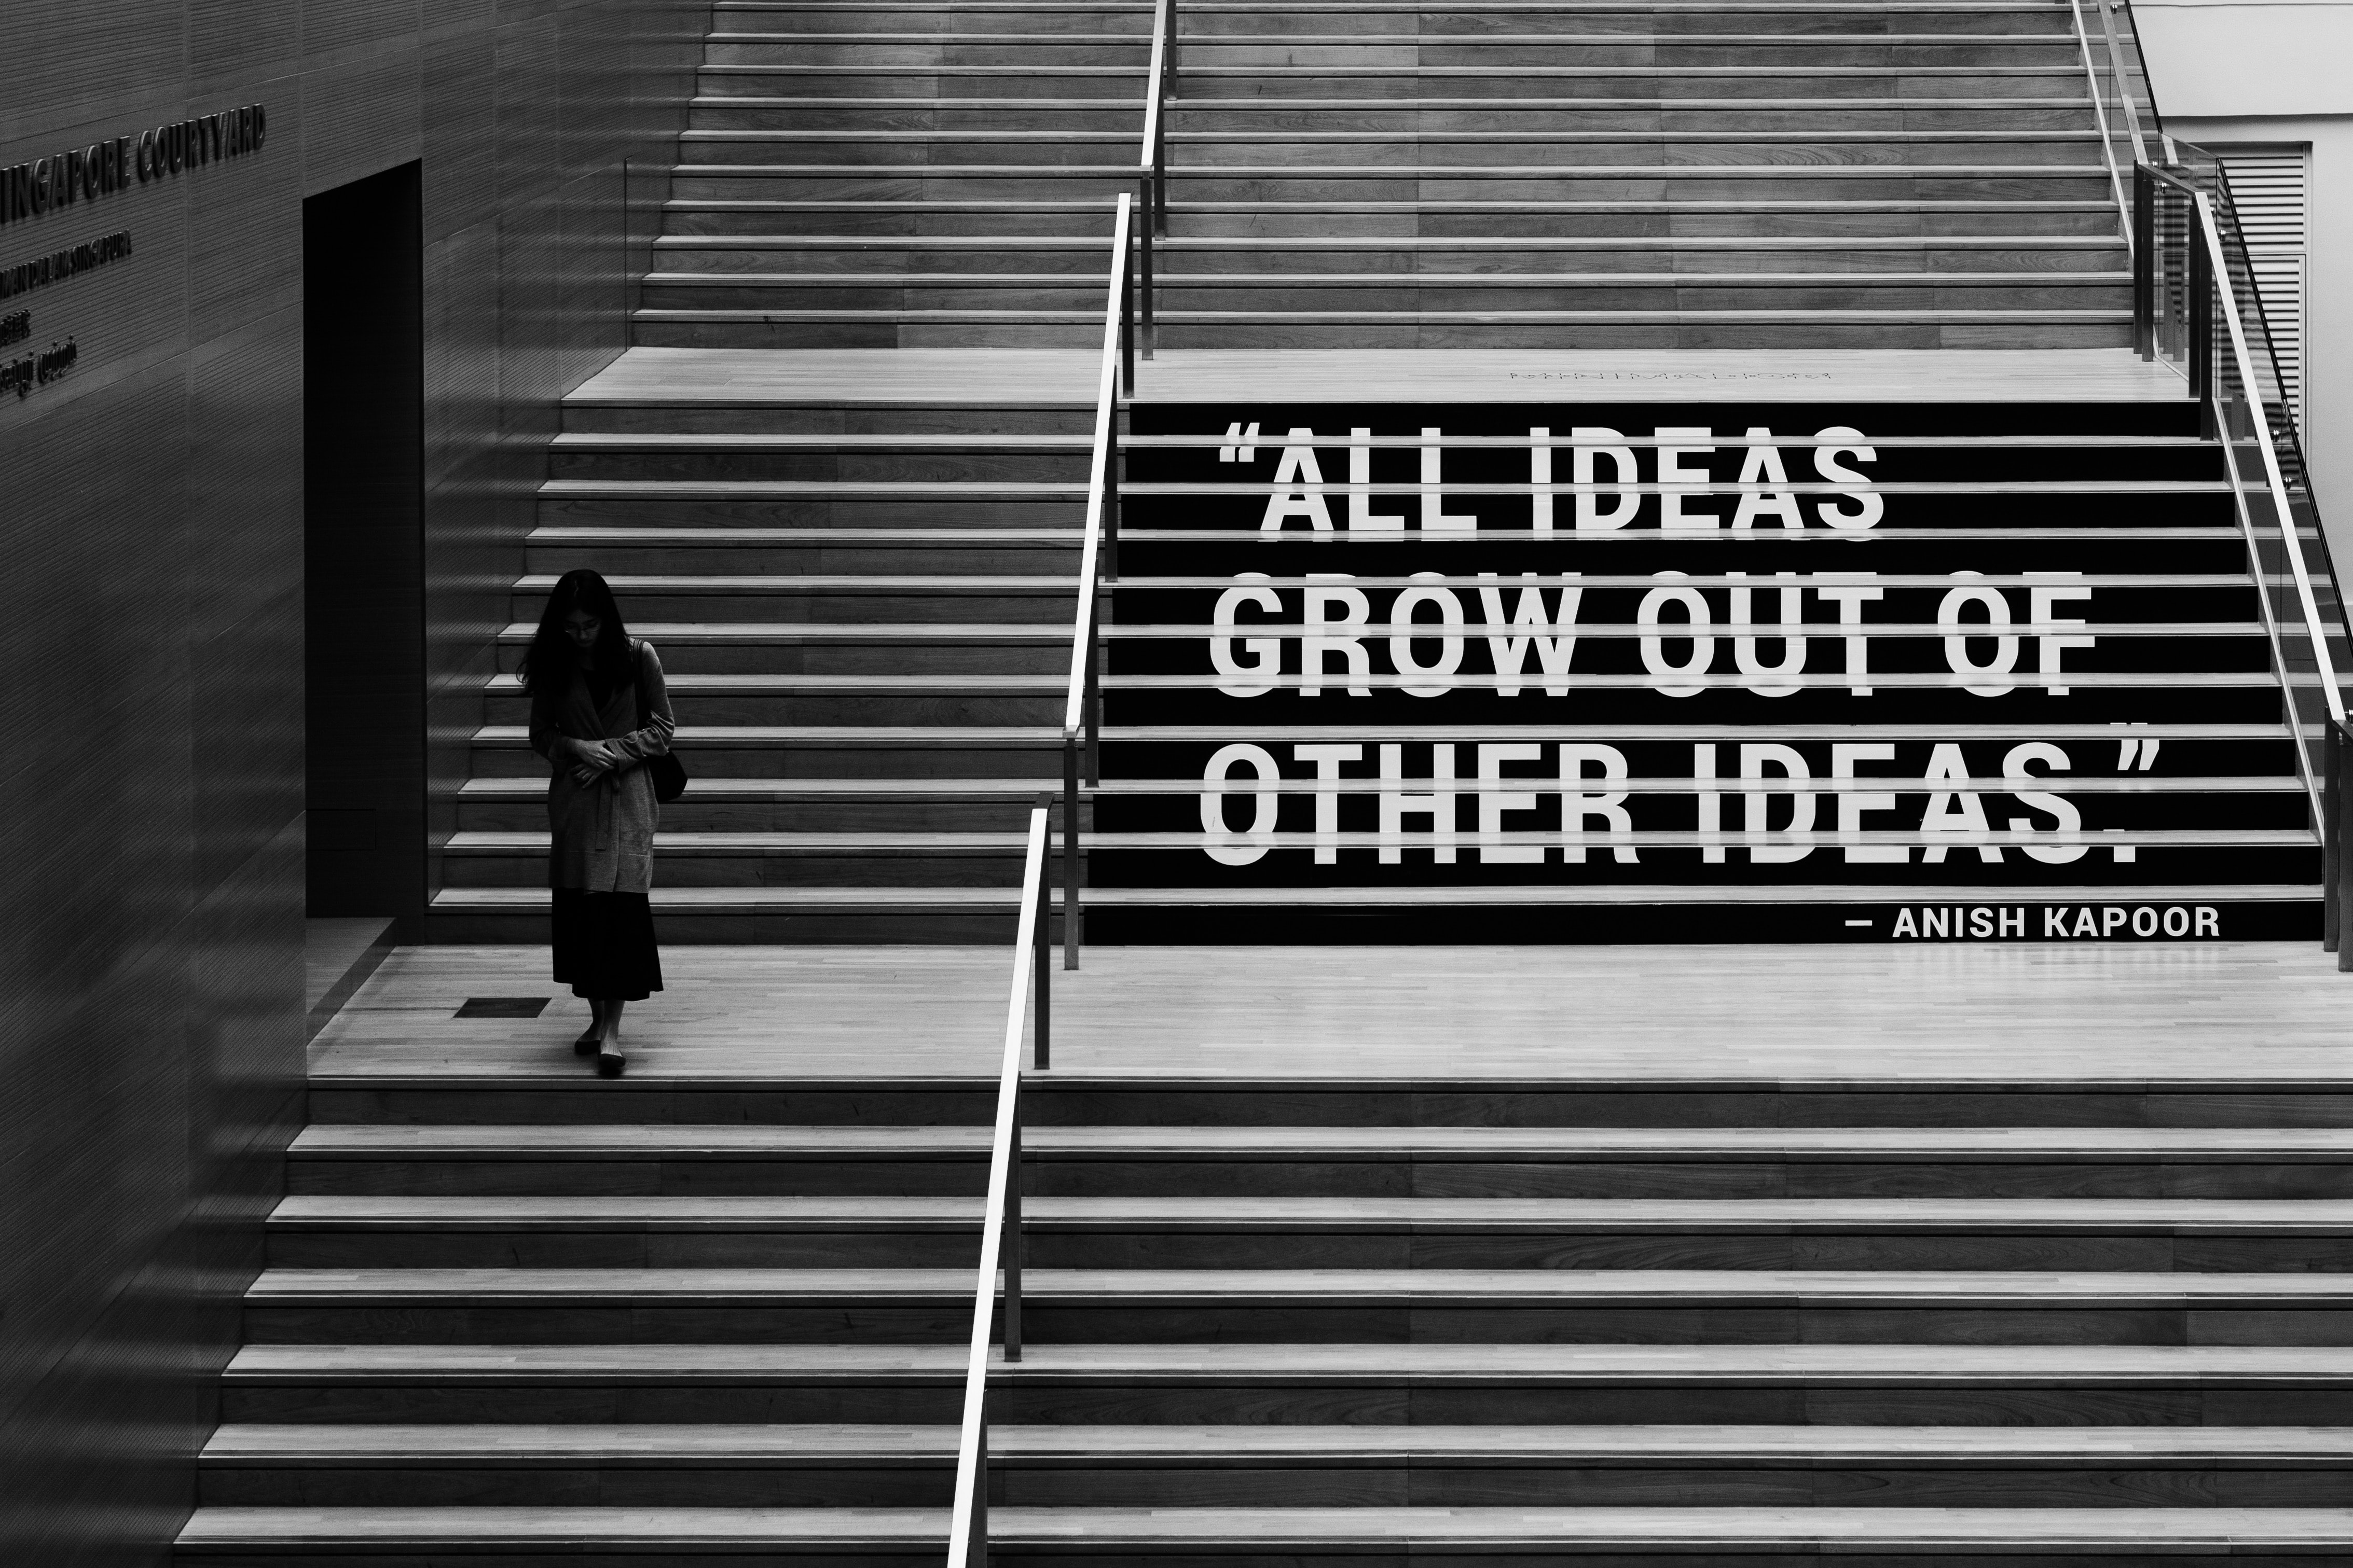 """All ideas grow out of other ideas"""